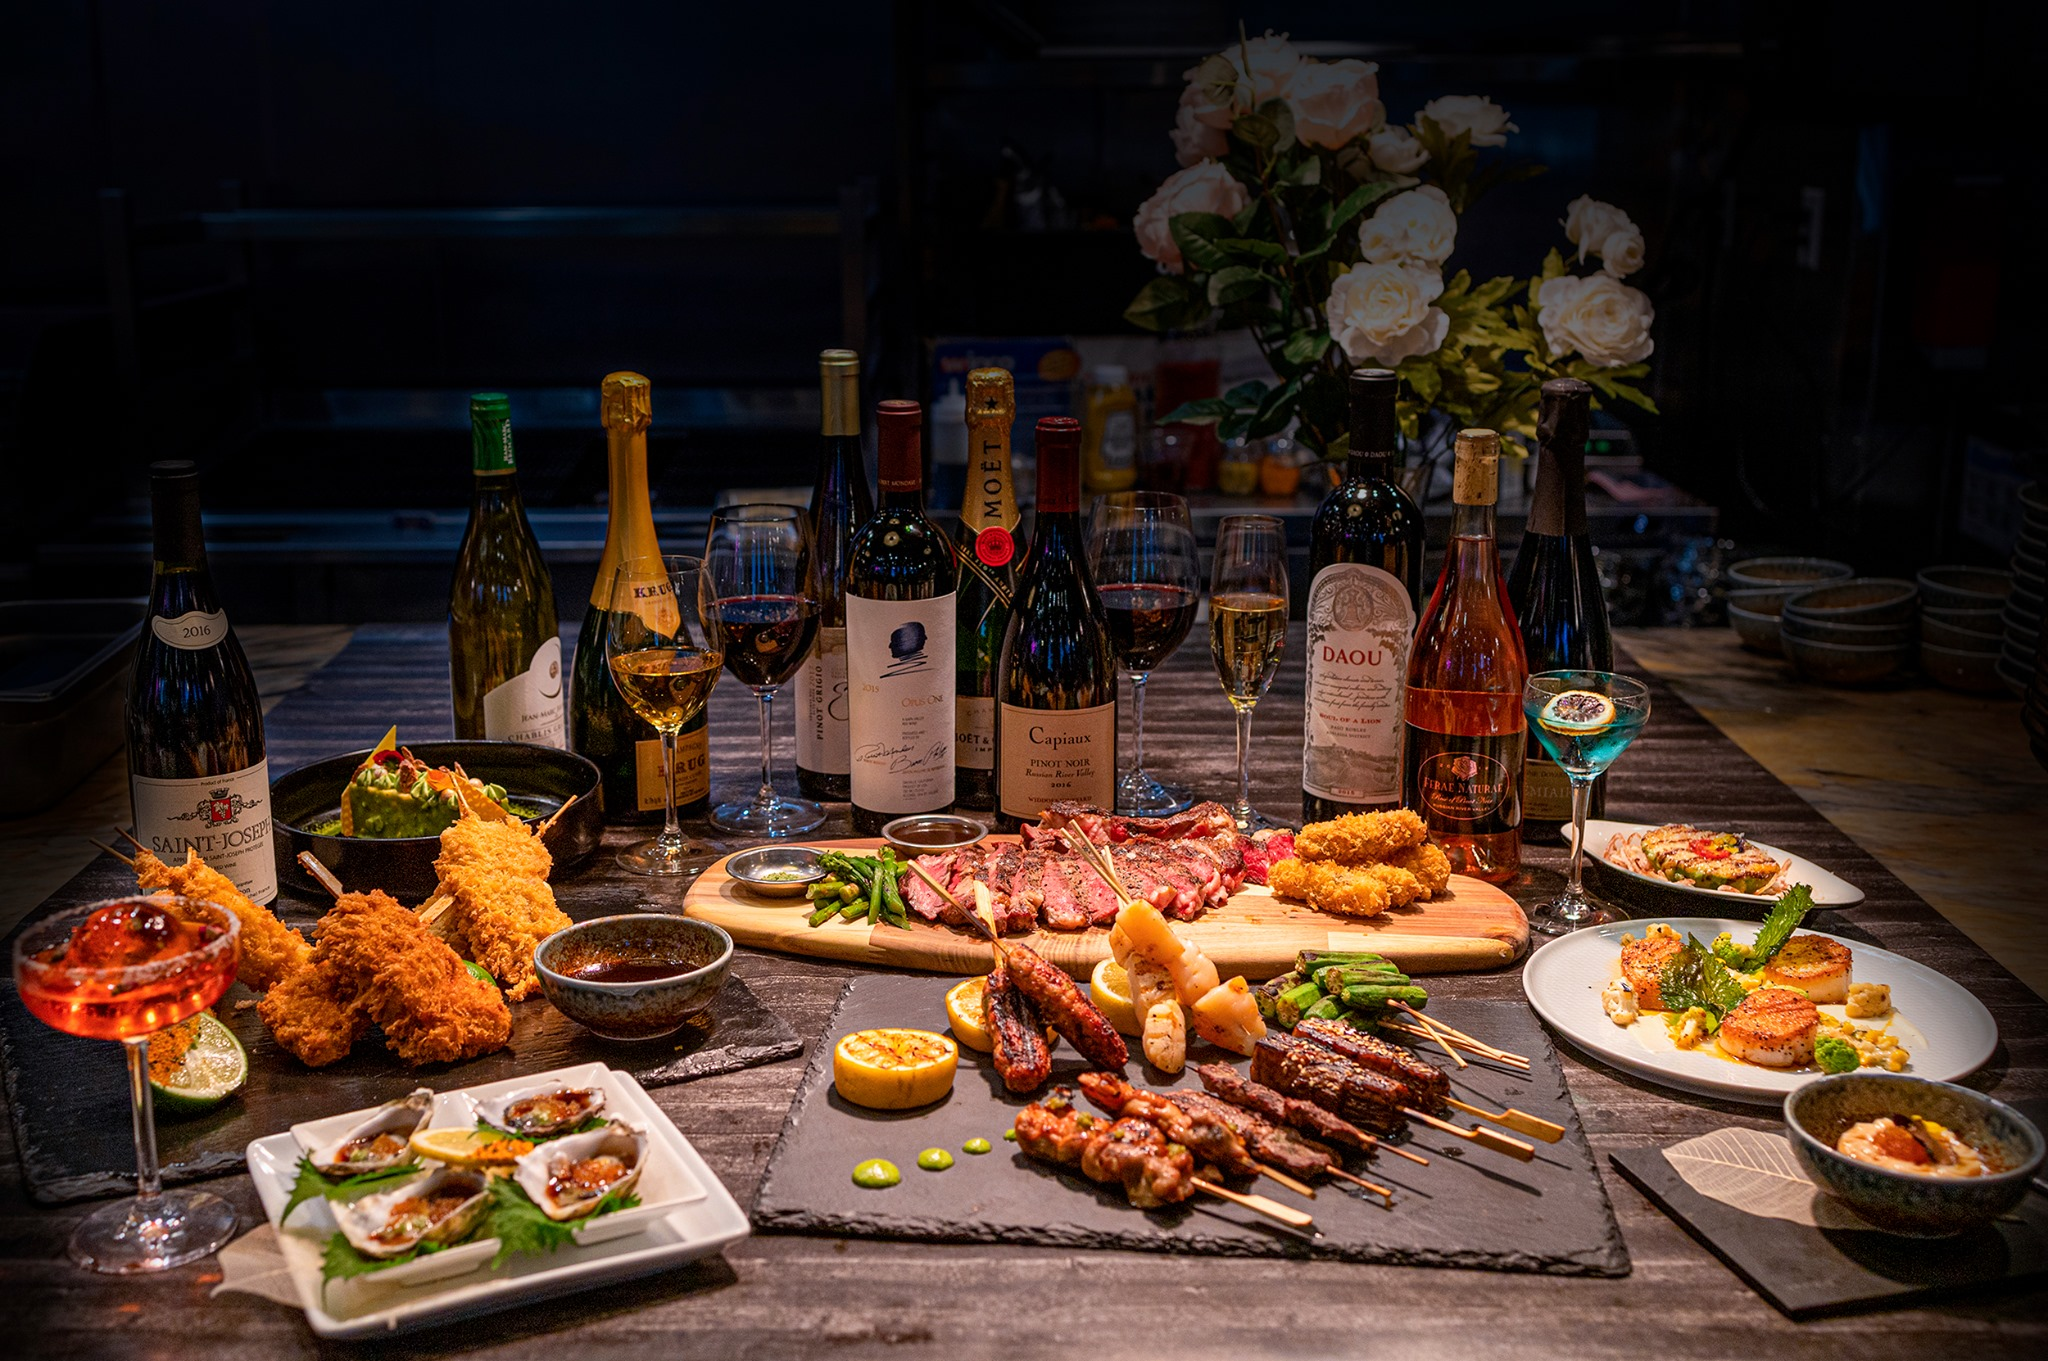 A display of the Japanese fusion tapas dishes and wine selection, coming soon to Osaka Sunset.